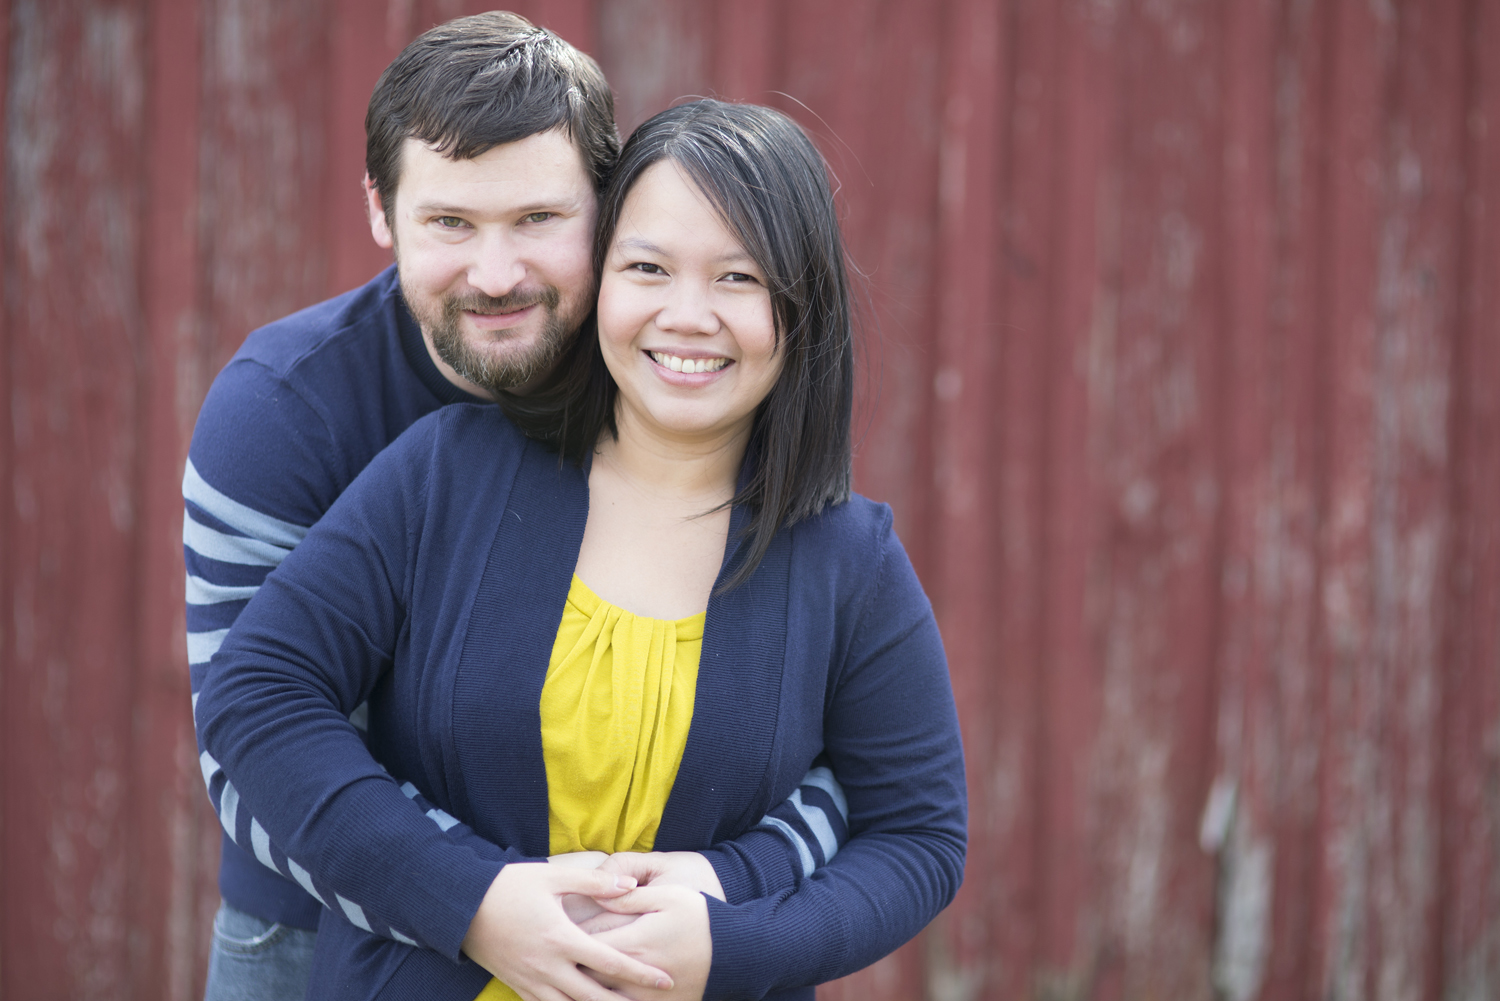 Mustard yellow and blue outfits for anniversary portrait session